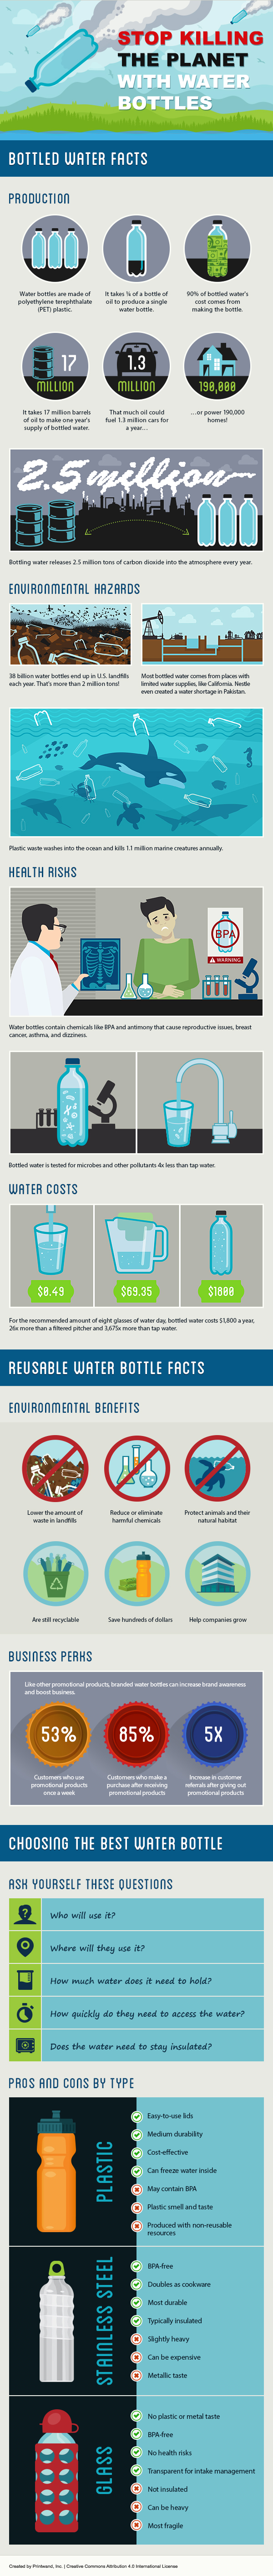 plastic-water-bottle-pollution-infographic-facts-environmental-effects